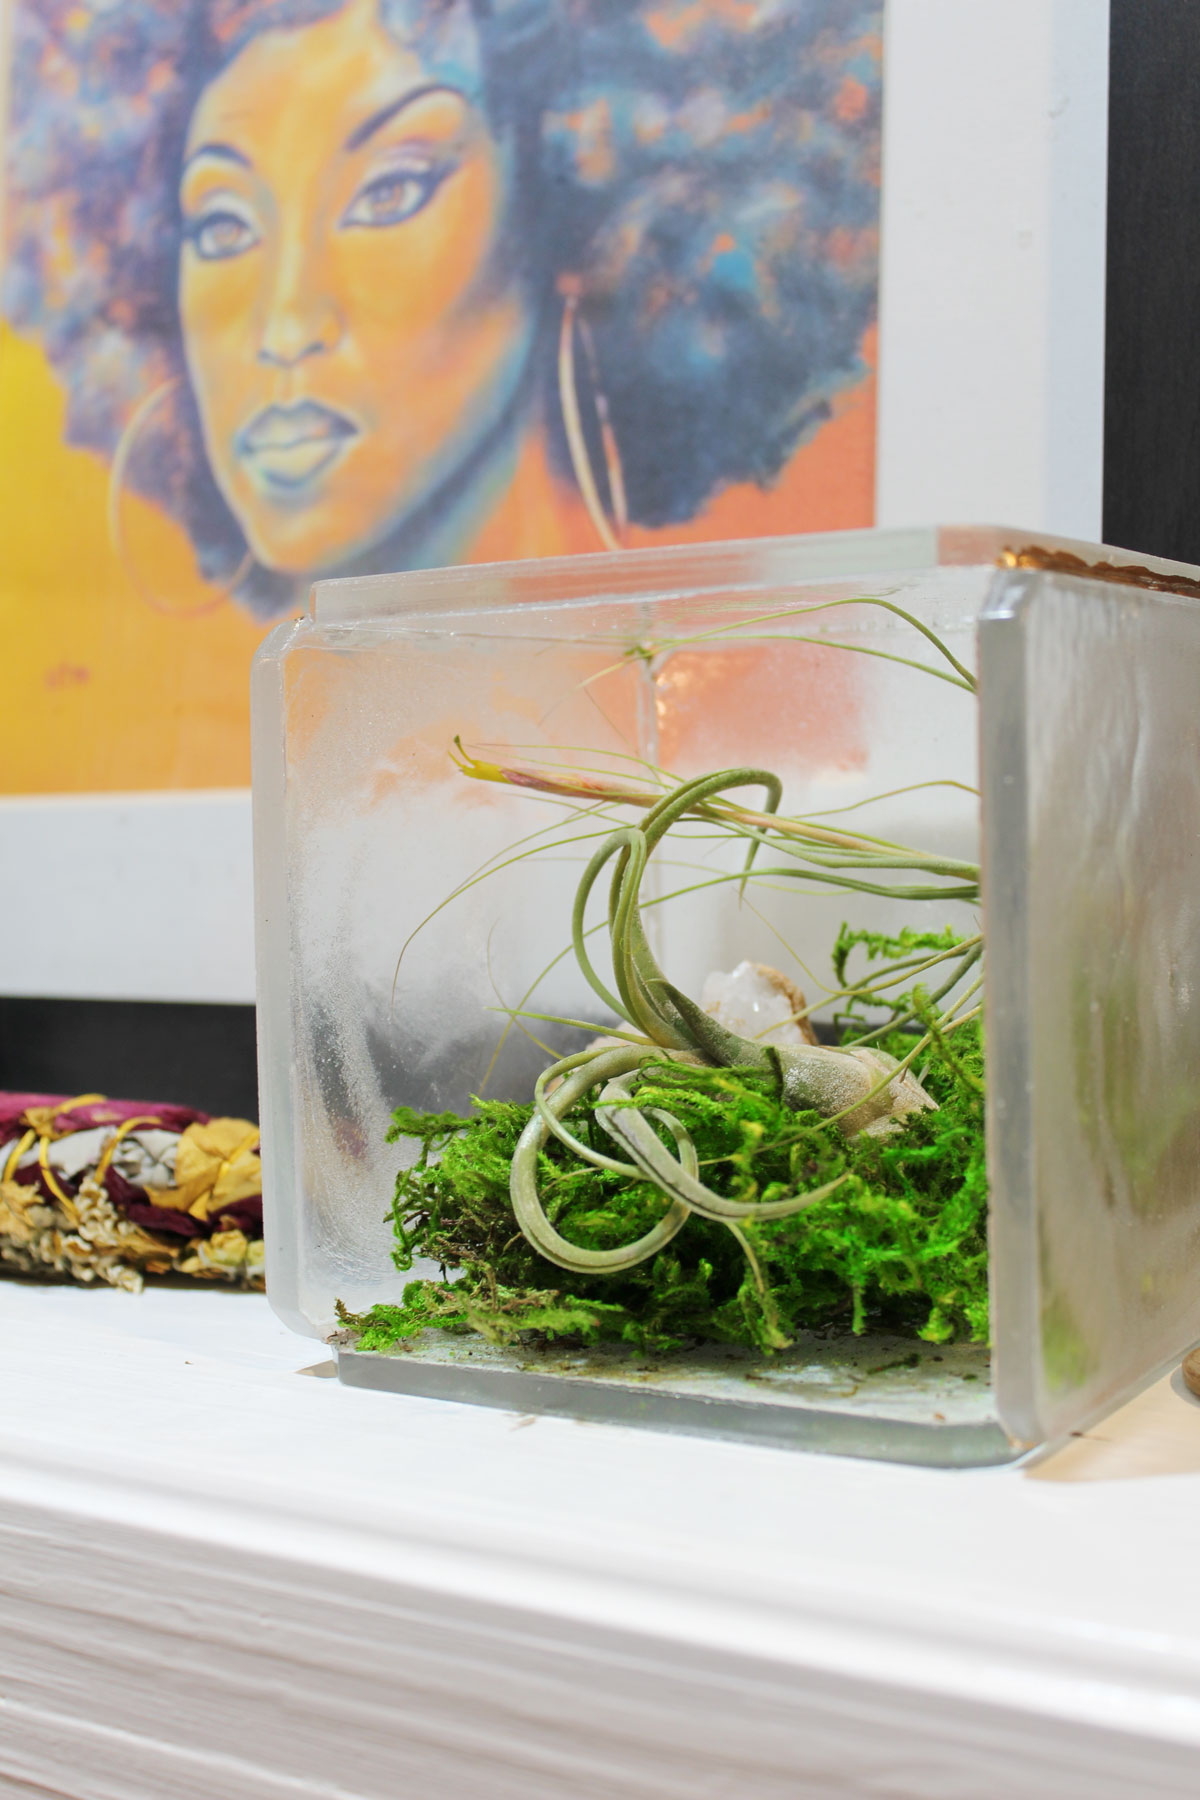 DIY Clear Resin Terrarium tutorial | easy resin terrarium tutorial | air plant display tutorial | clear polyester casting resin #resincrafts #resindiyprojects #resindiy #diyterrarium